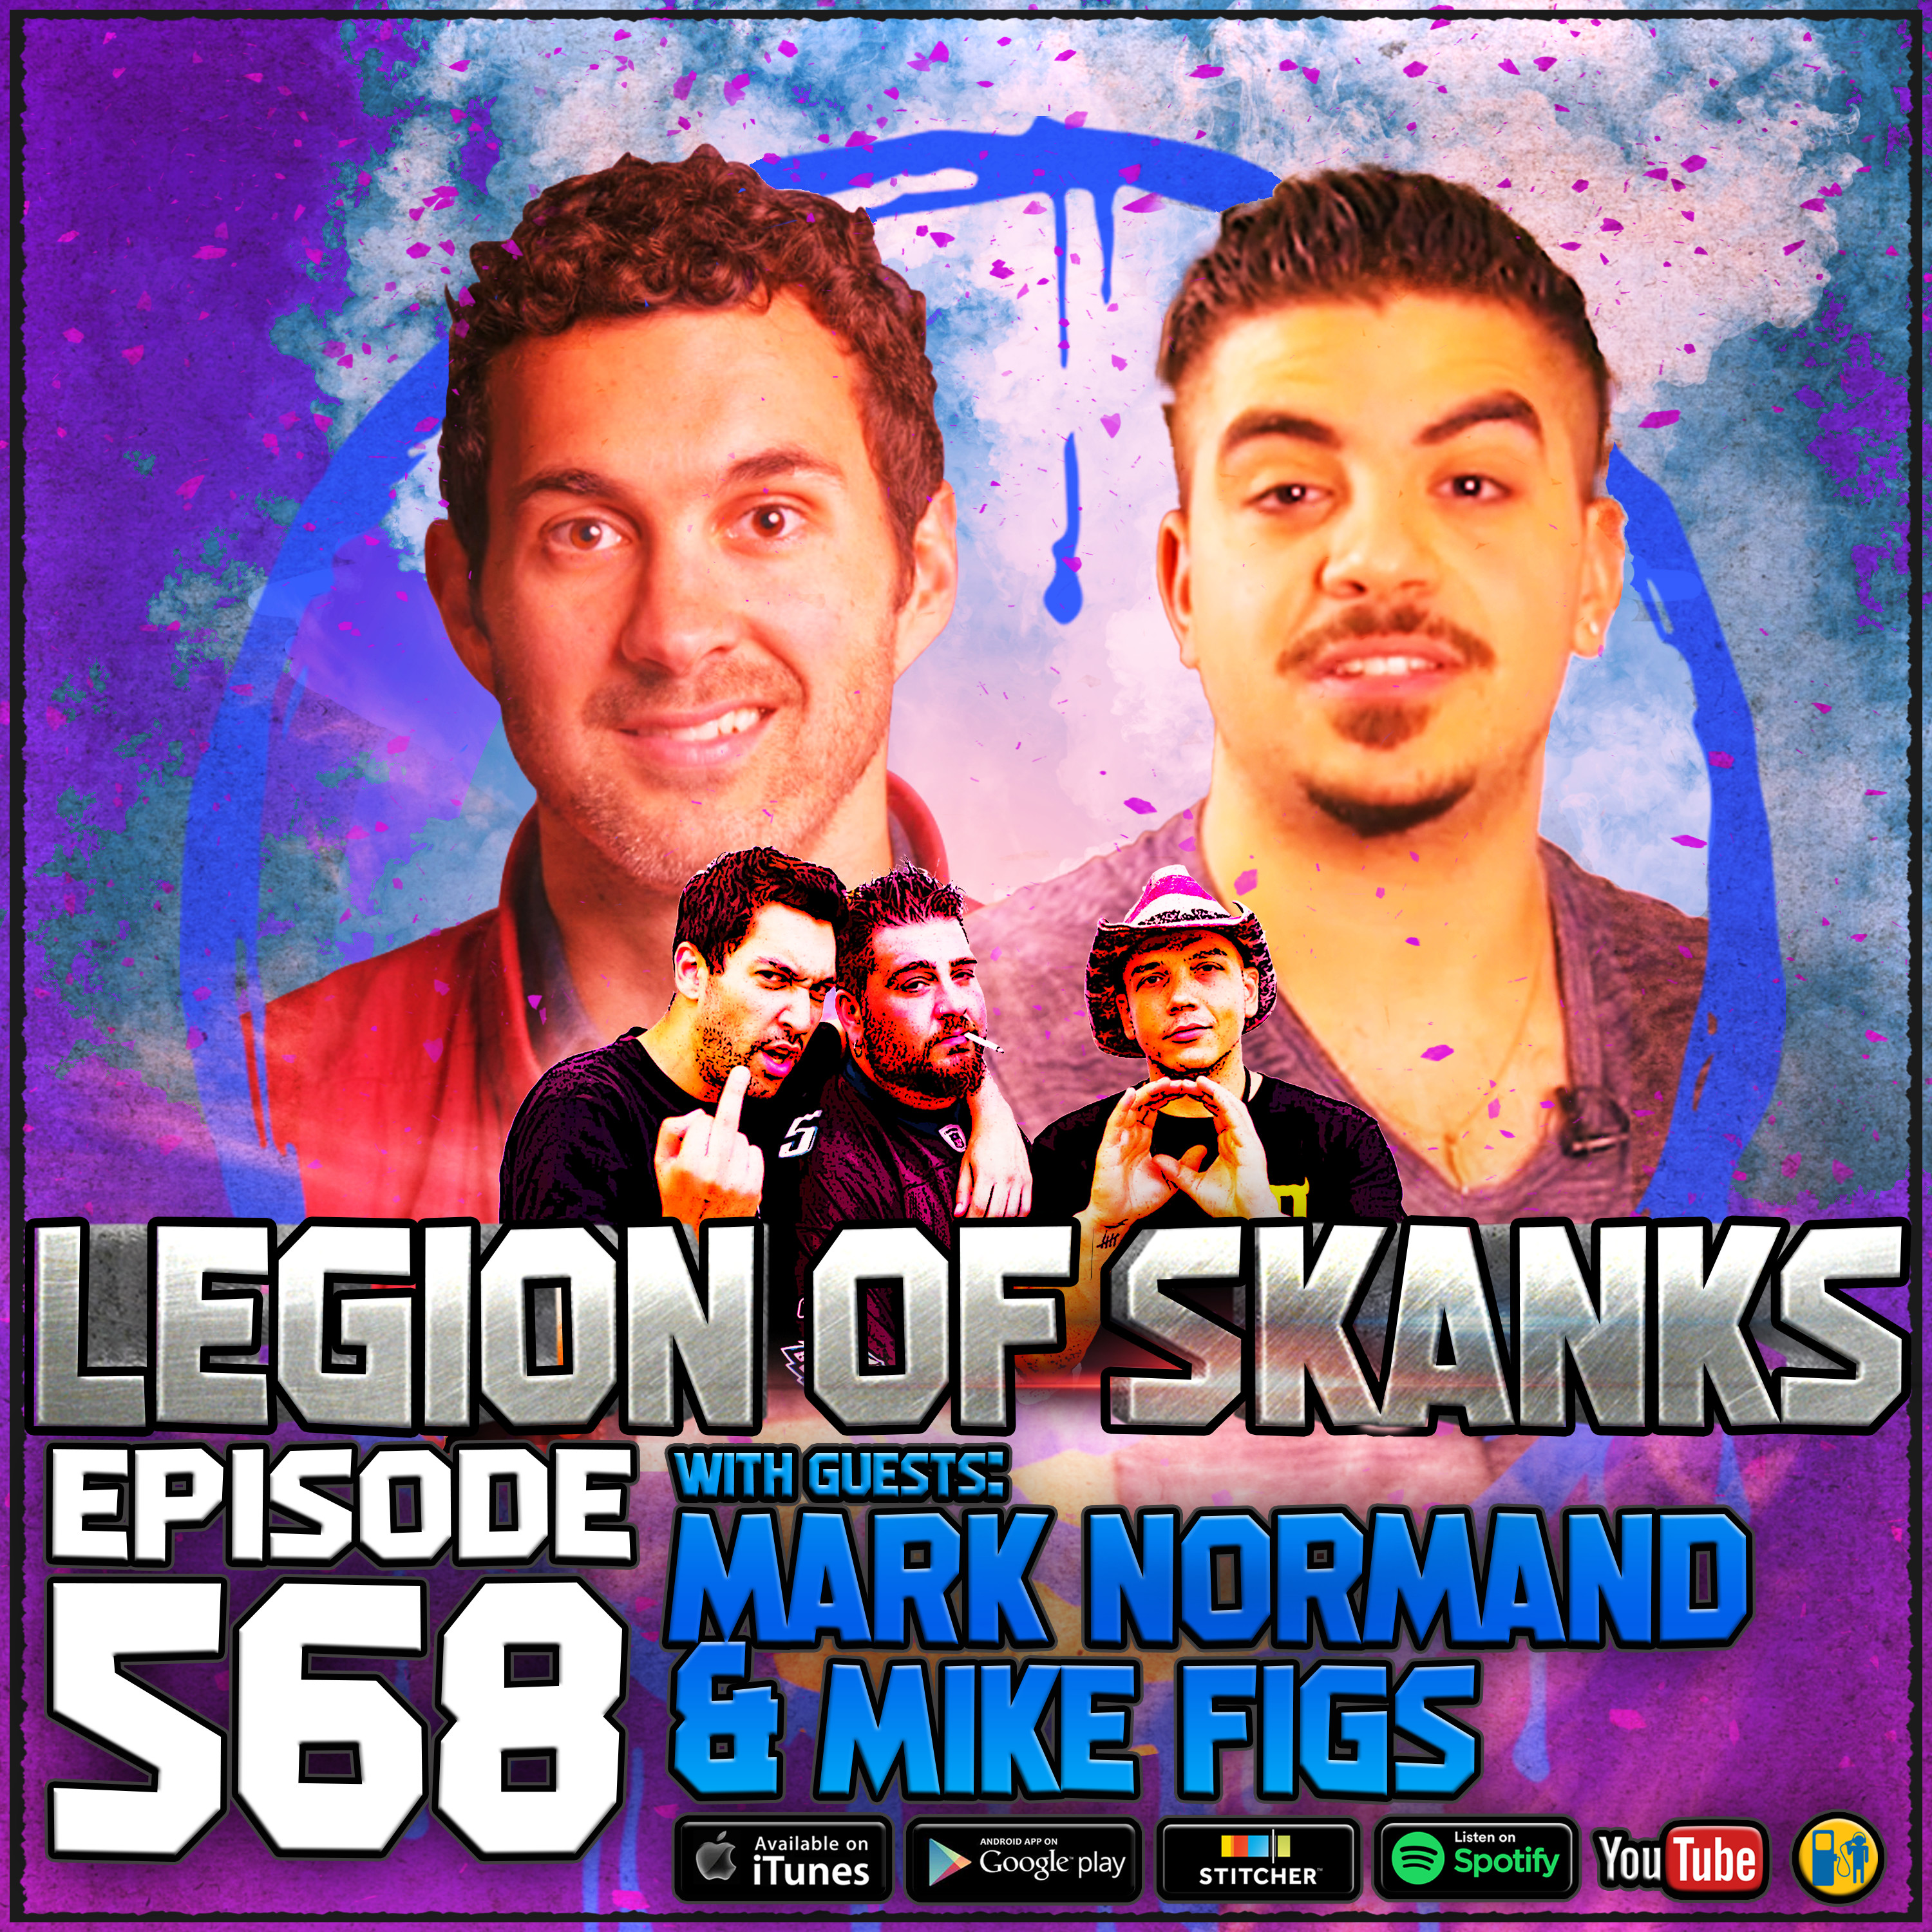 Episode #568 - What's The Deal With Homework? - Mark Normand & Mike Figs